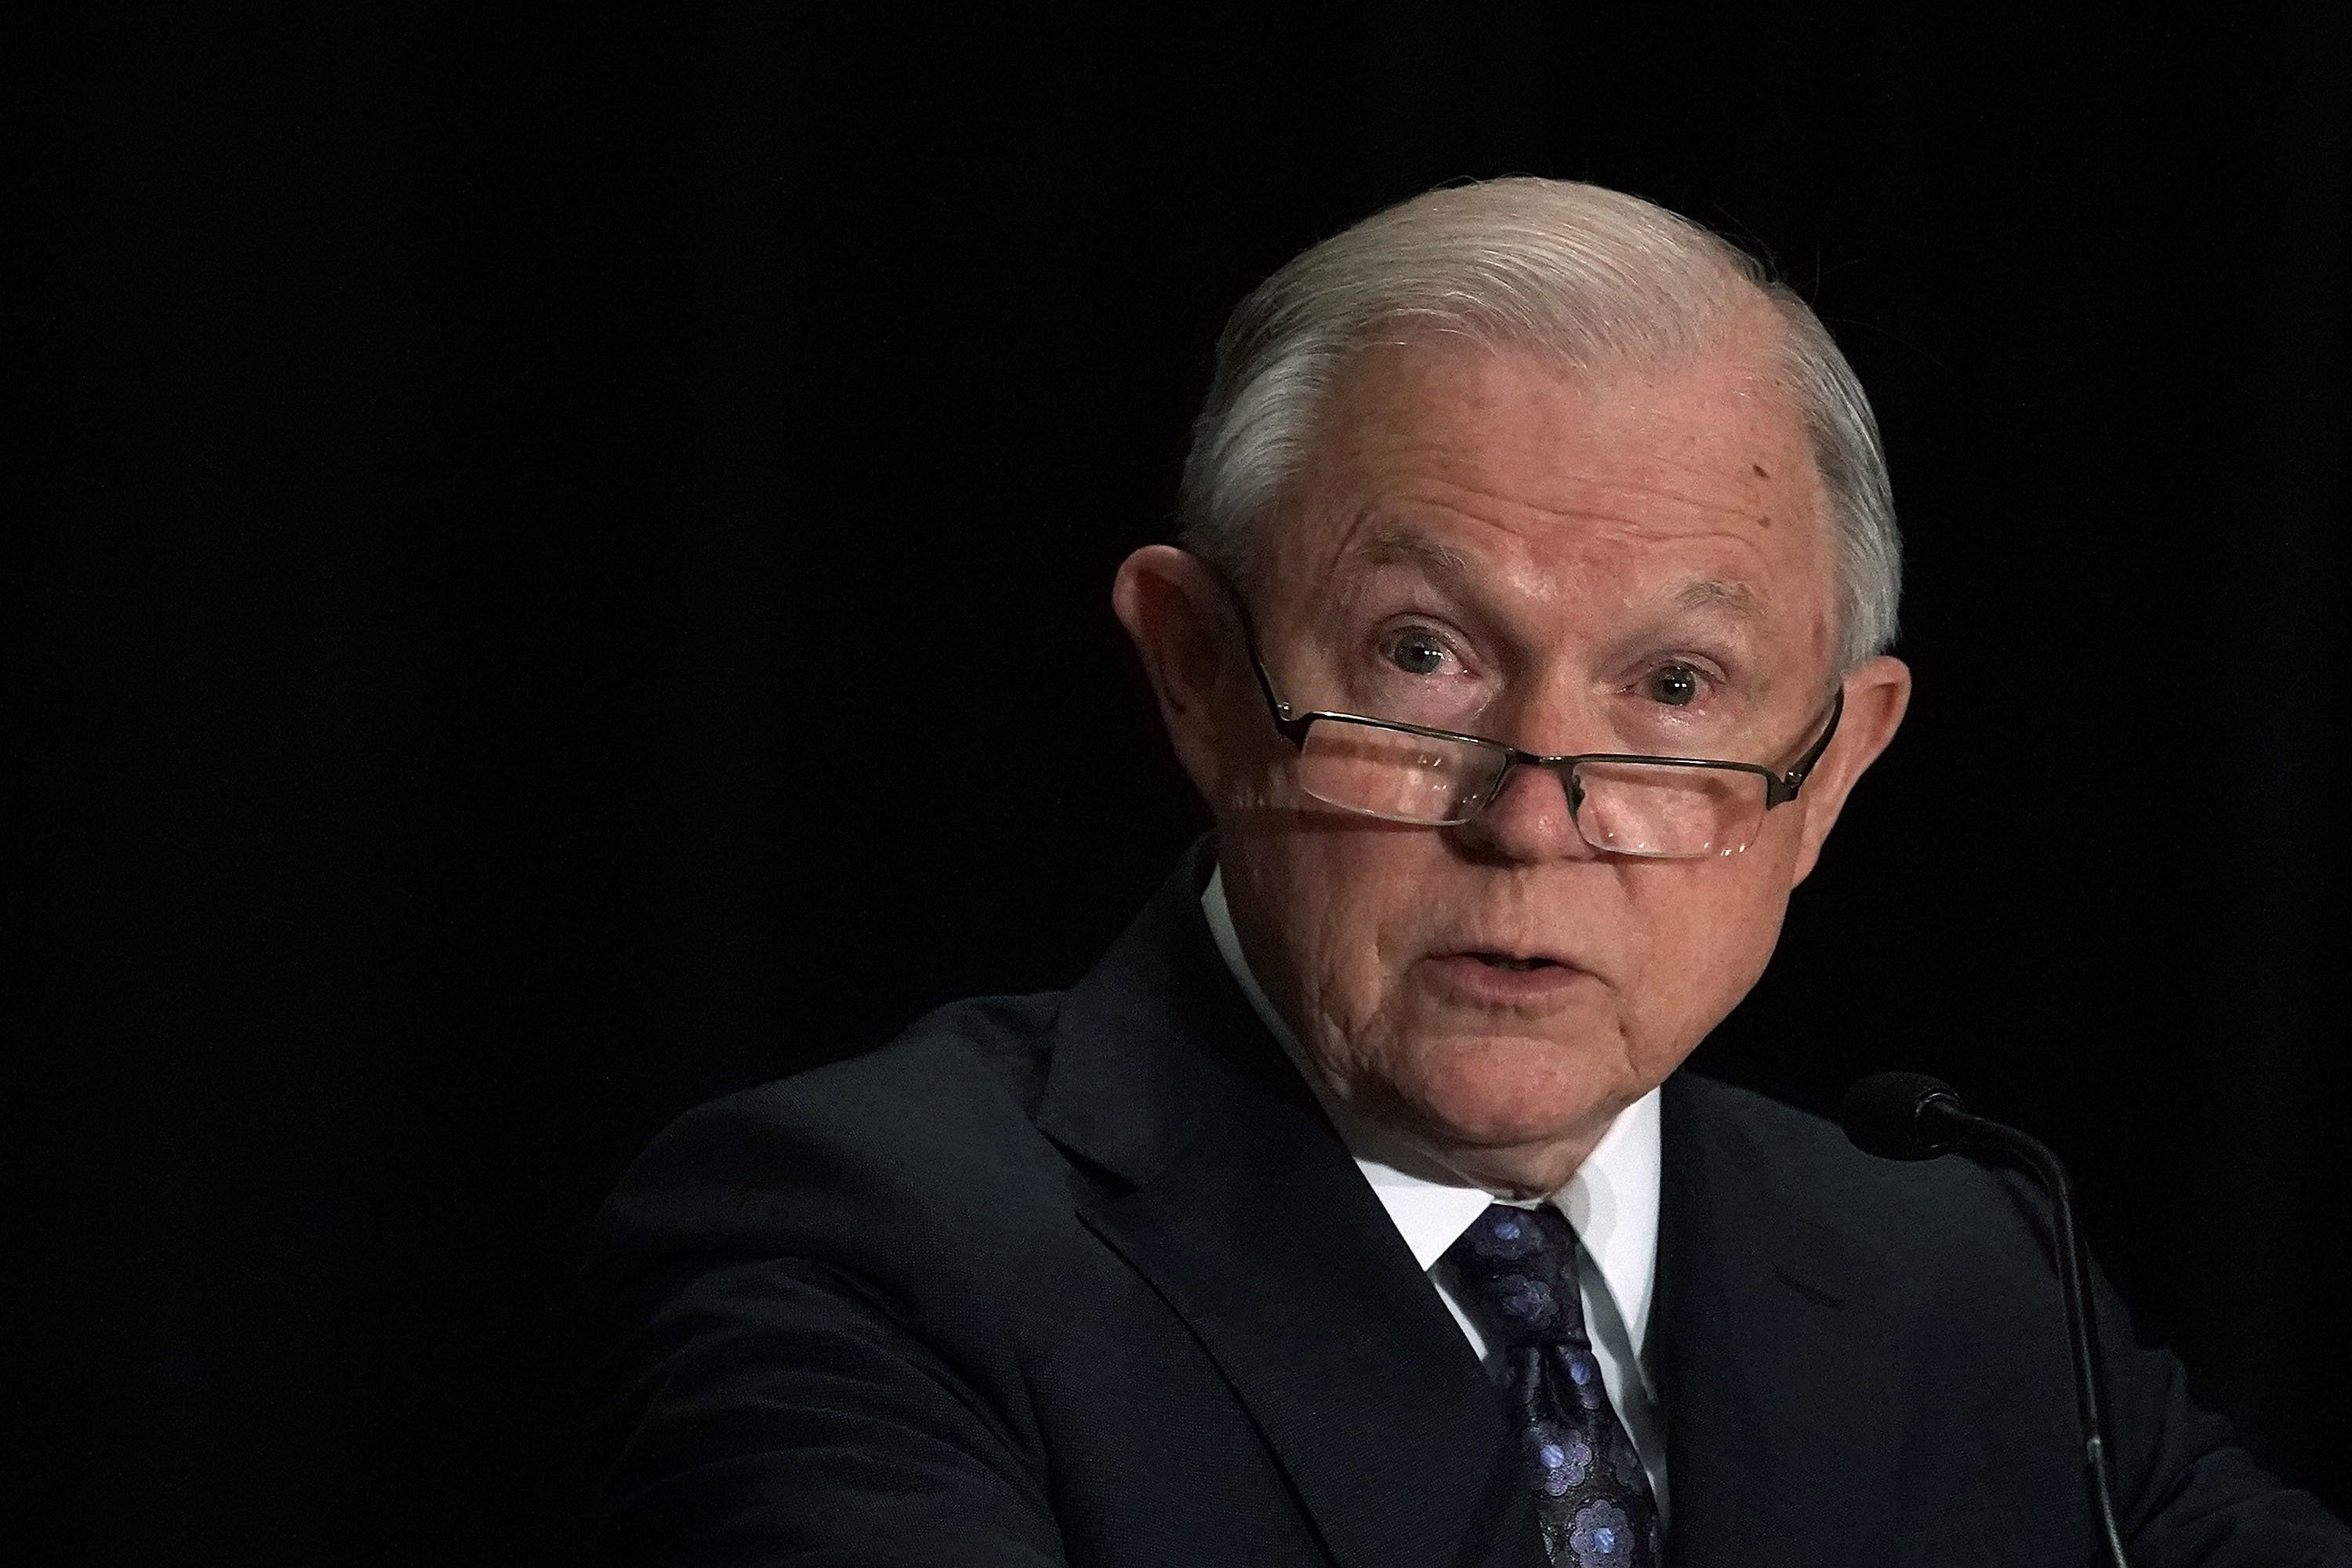 TYSONS, VA - JUNE 11:  U.S. Attorney General Jeff Sessions delivers remarks at the Justice Department's Executive Officer for Immigration Review (EOIR) Annual Legal Training Program June 11, 2018 at the Sheraton Tysons Hotel in Tysons, Virginia. Sessions spoke on his intention to limit reasons for people to claim asylum in the U.S.  (Photo by Alex Wong/Getty Images)